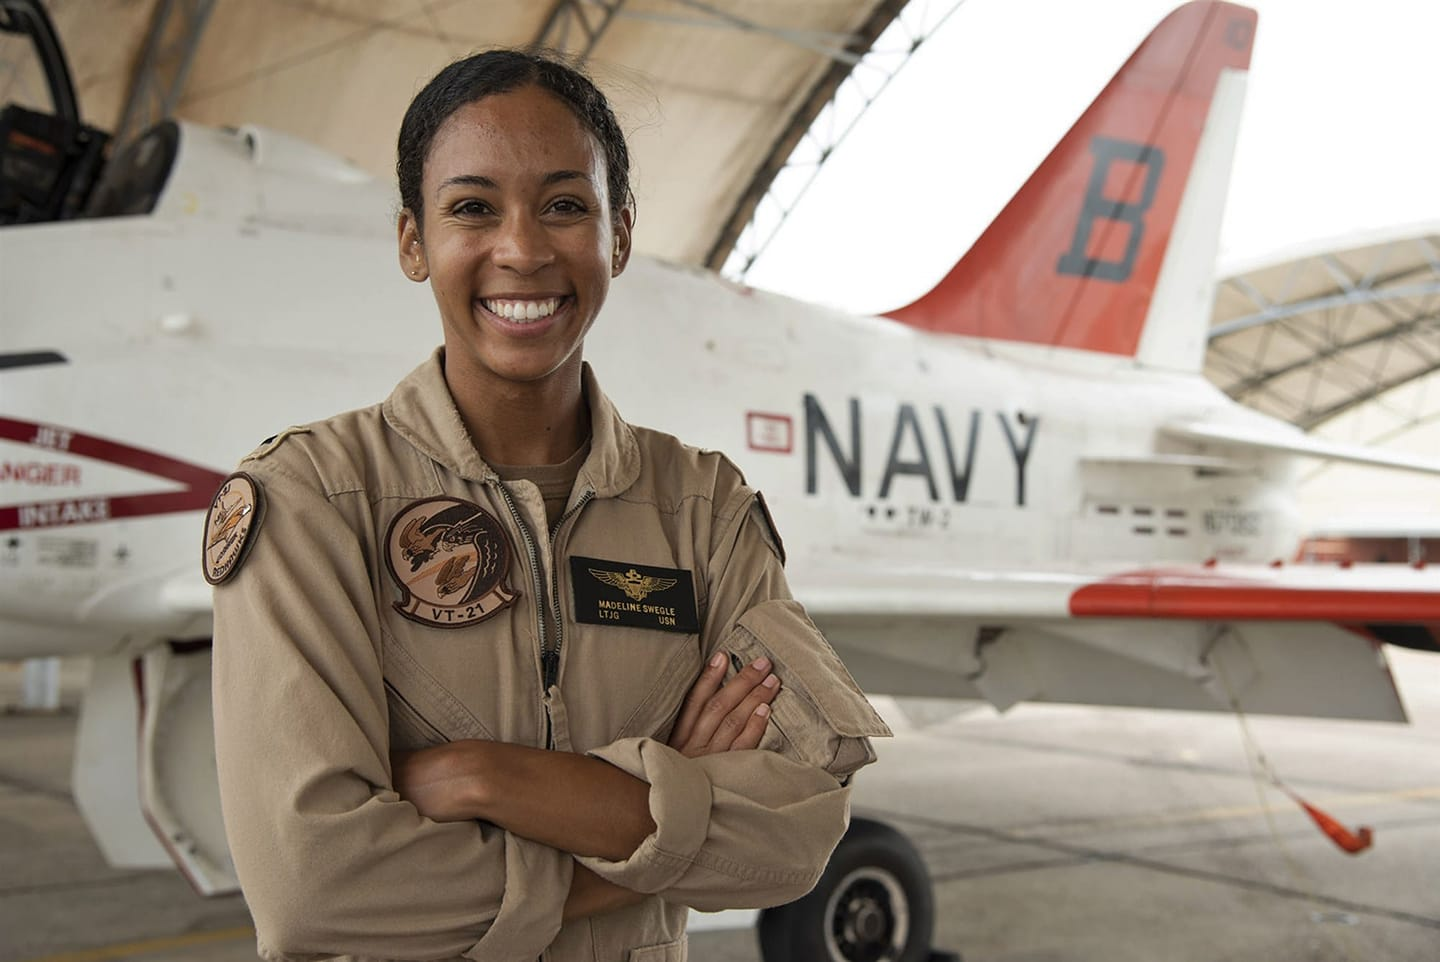 female pilot navy